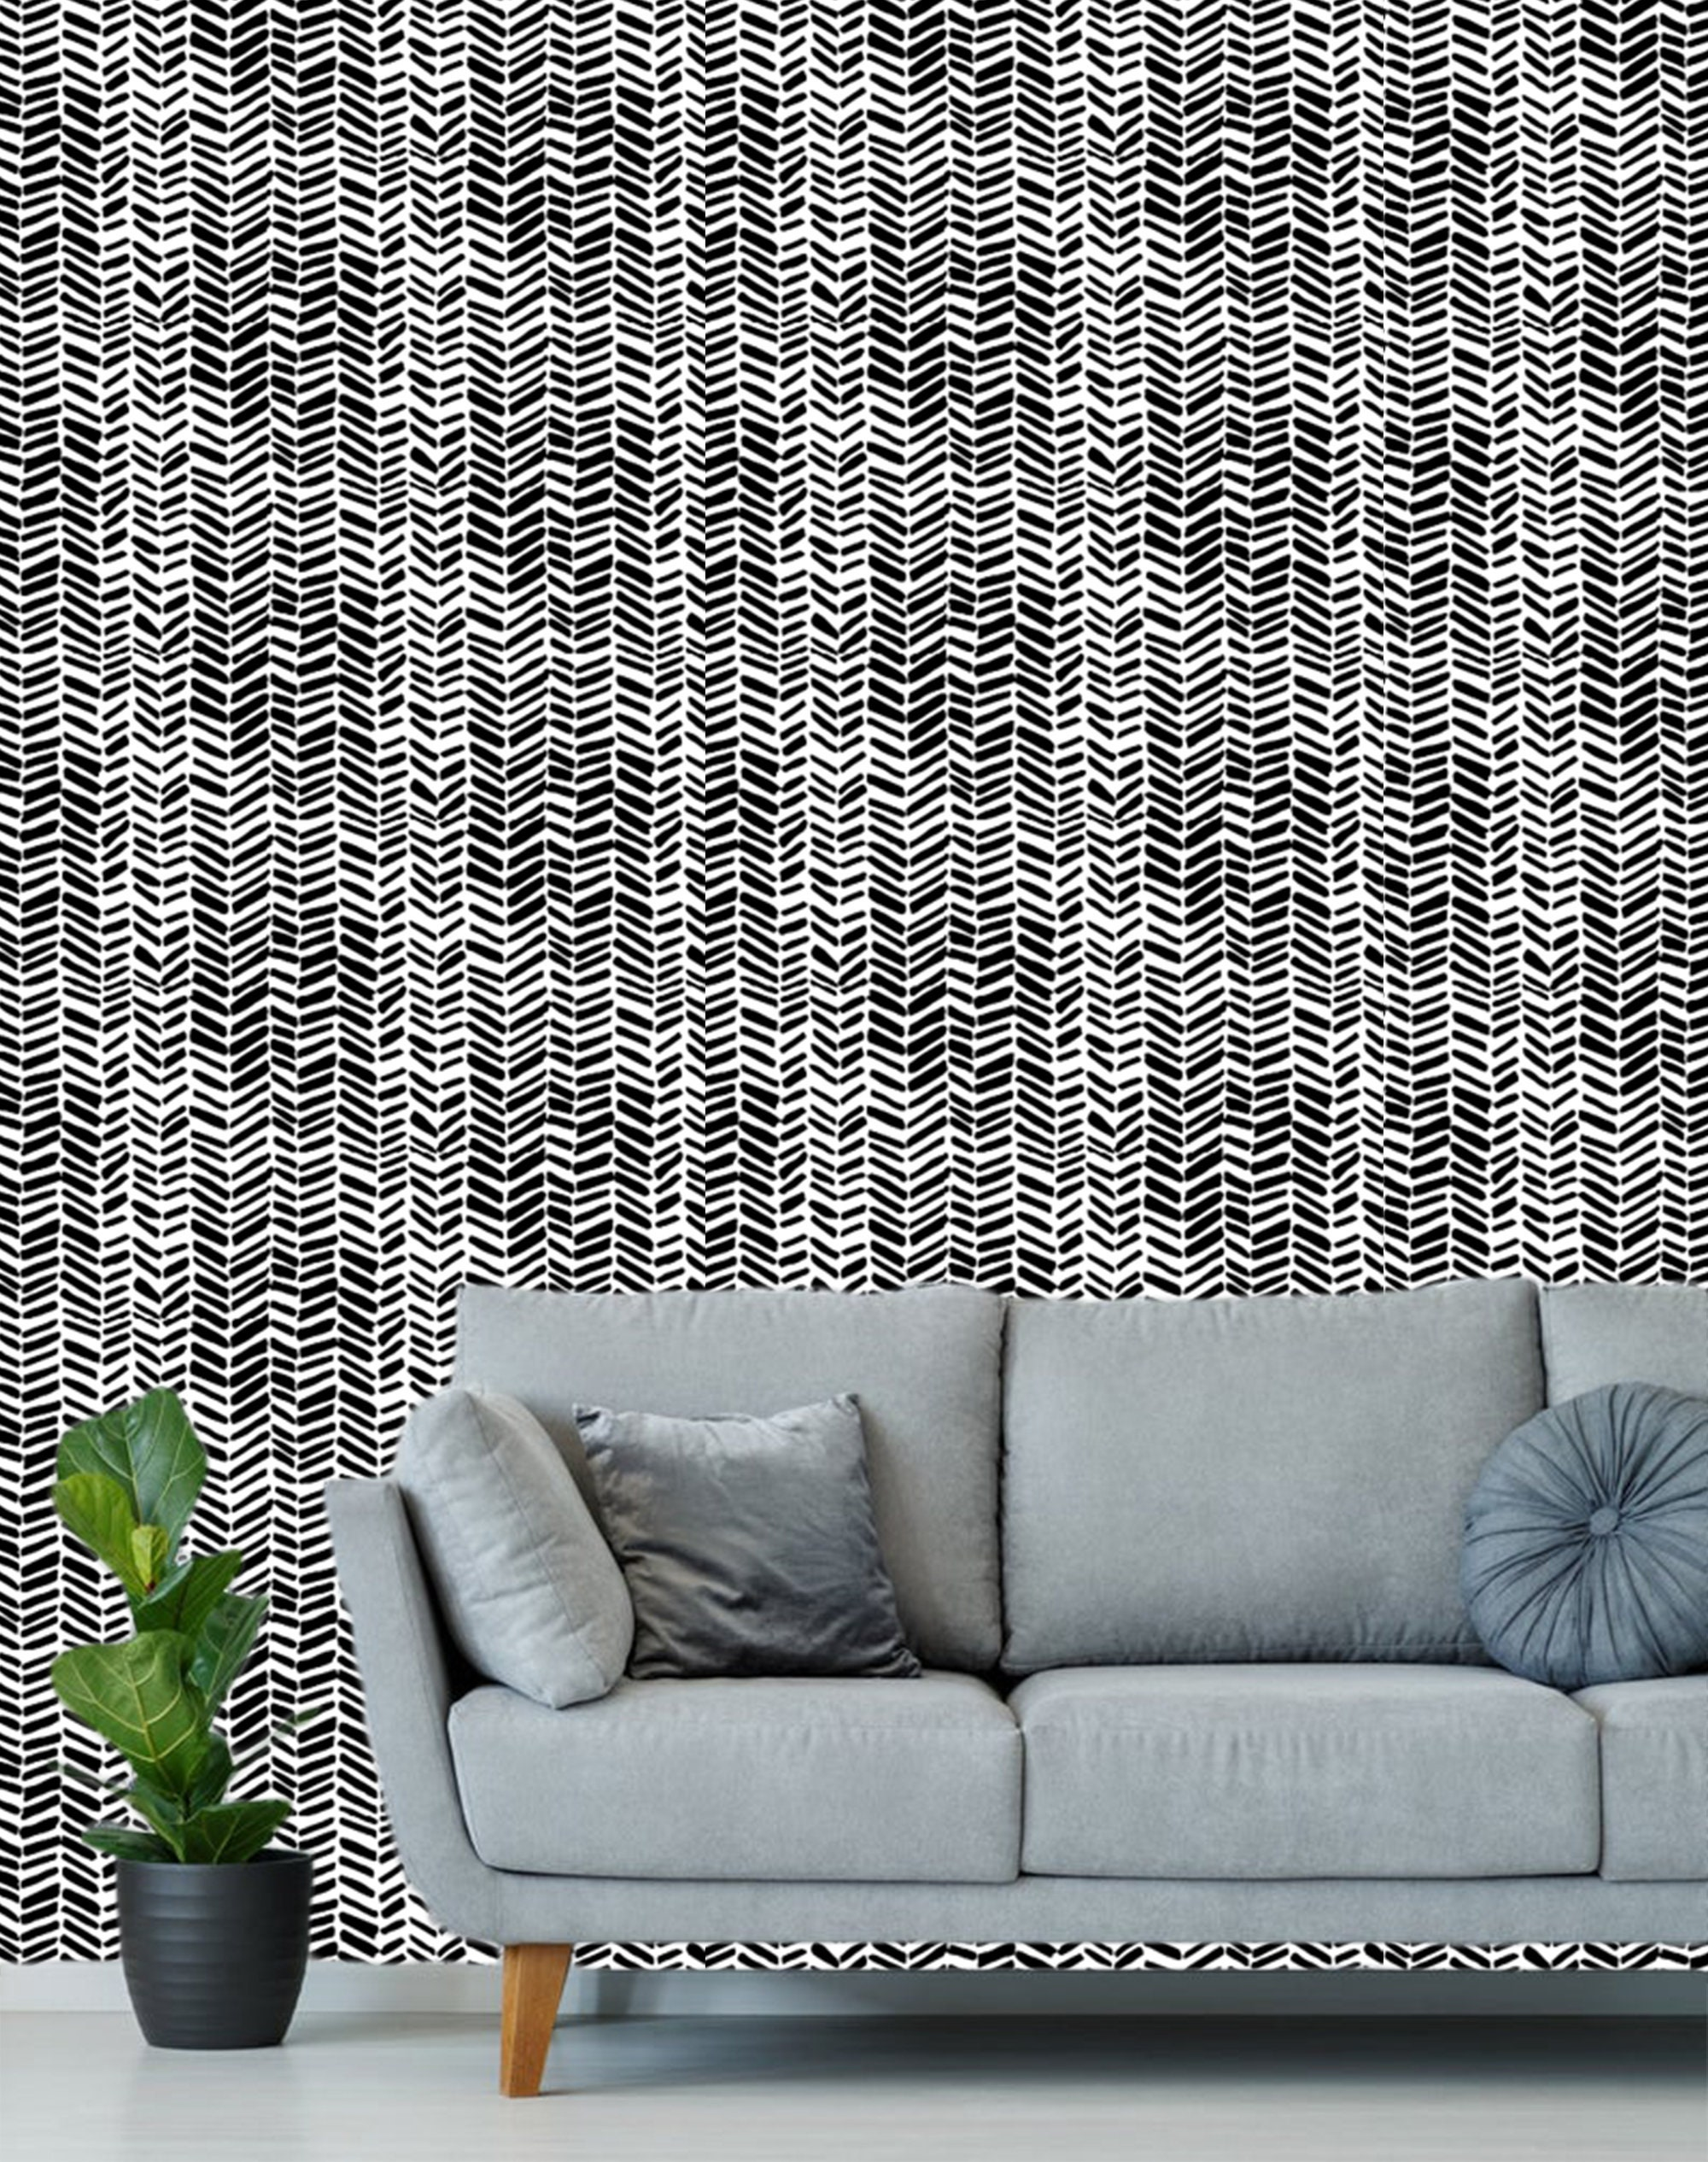 Black White Chevron Wallpaper Removable Traditional Wallpaper Peel And Stick Wallpaper Black White Wallpaper Self Adhesive Wallpaper